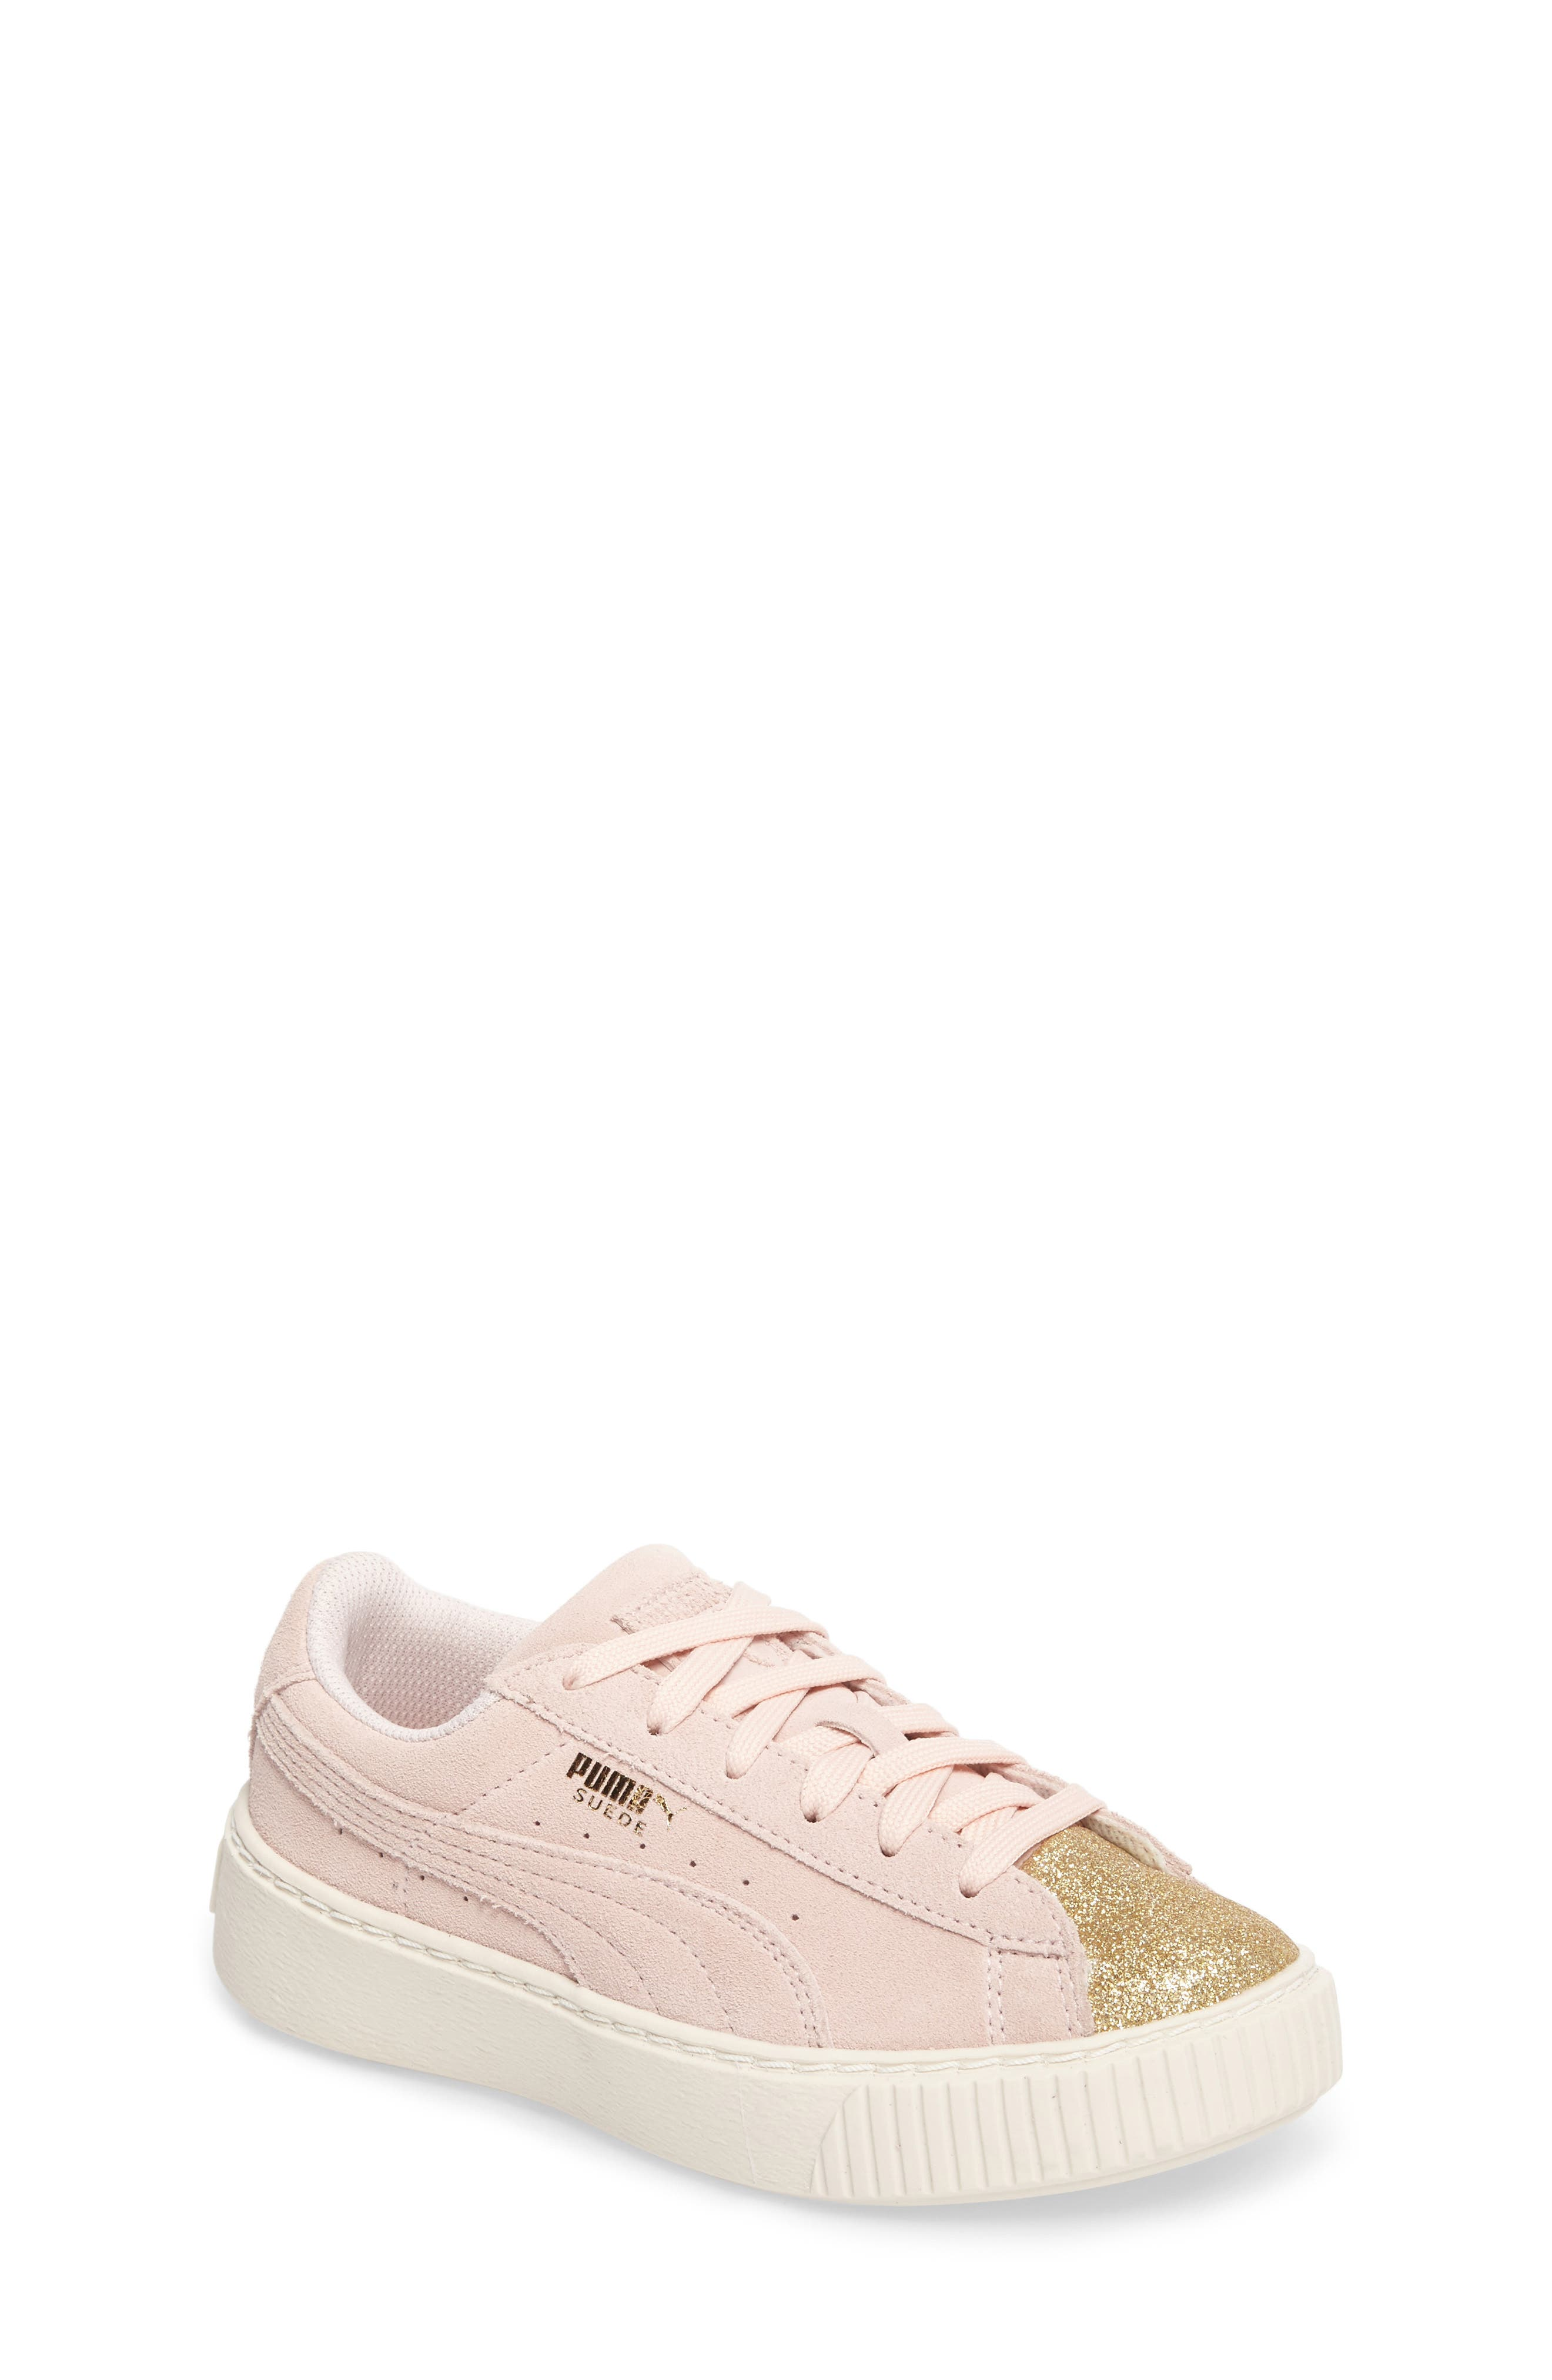 Alternate Image 1 Selected - PUMA Suede Platform Glam Sneaker (Toddler, Little Kid & Big Kid)